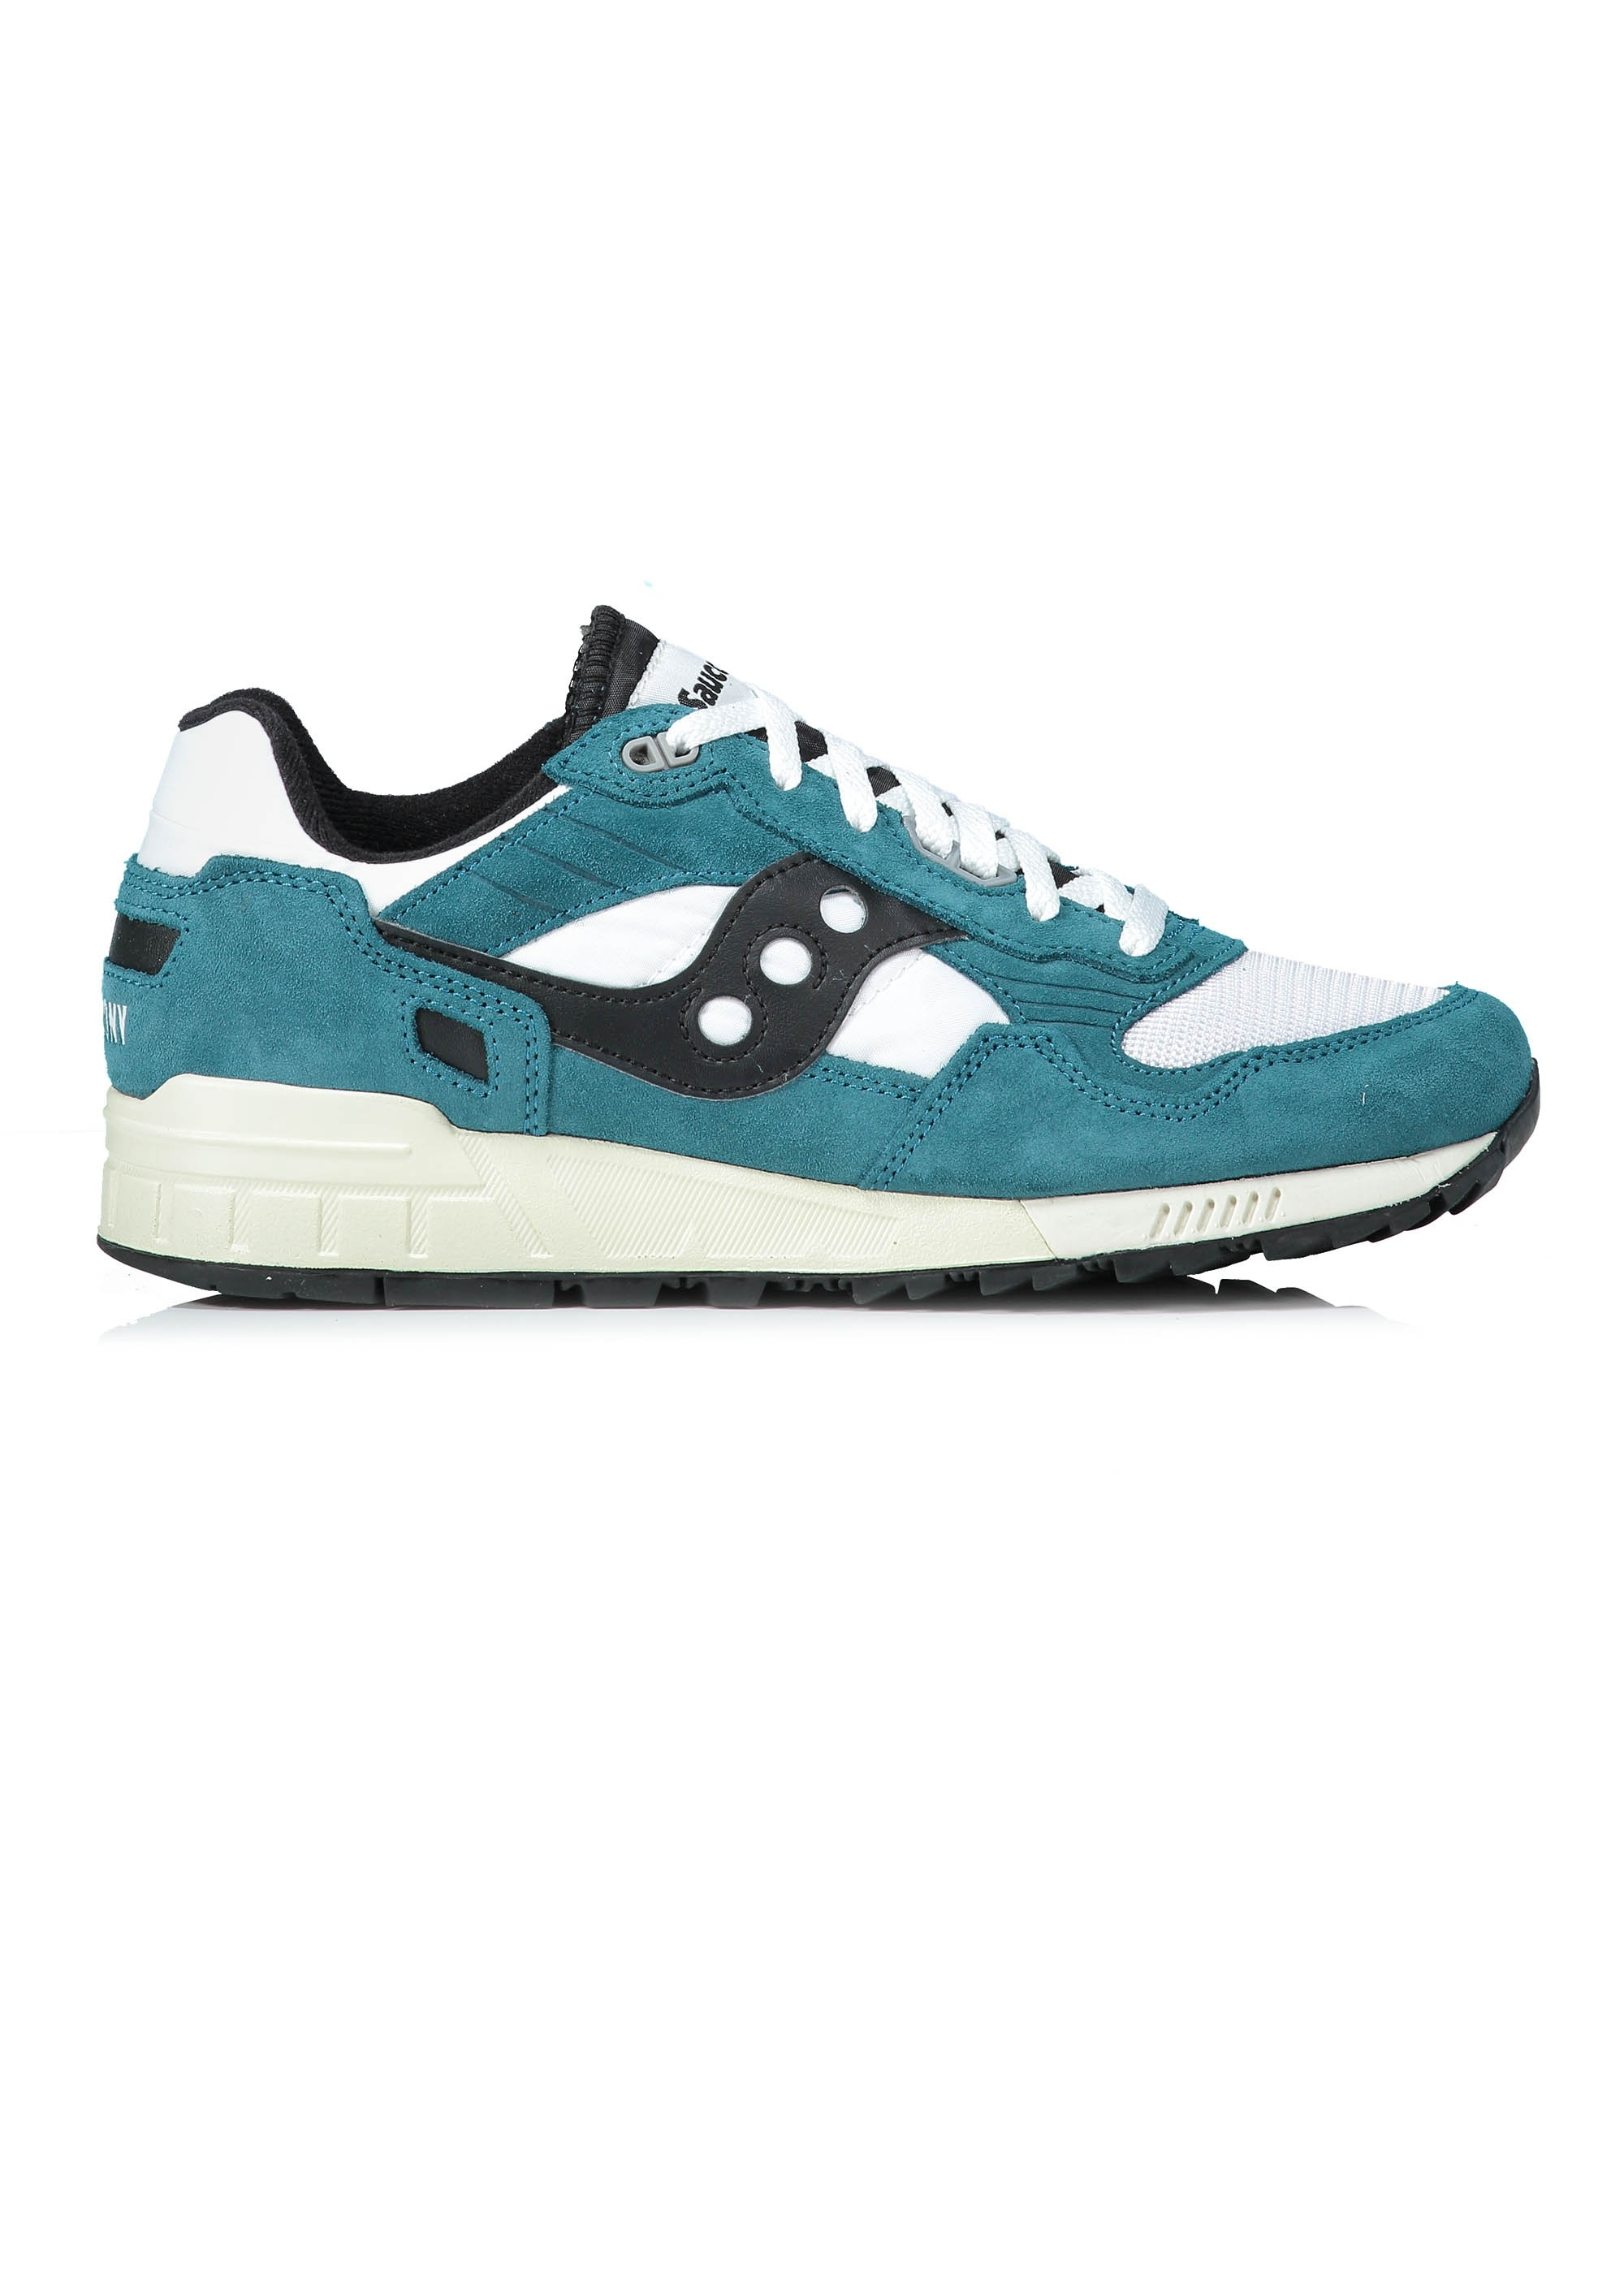 new arrival a6f86 e0672 Saucony Shadow 5000 Vintage - Teal / White